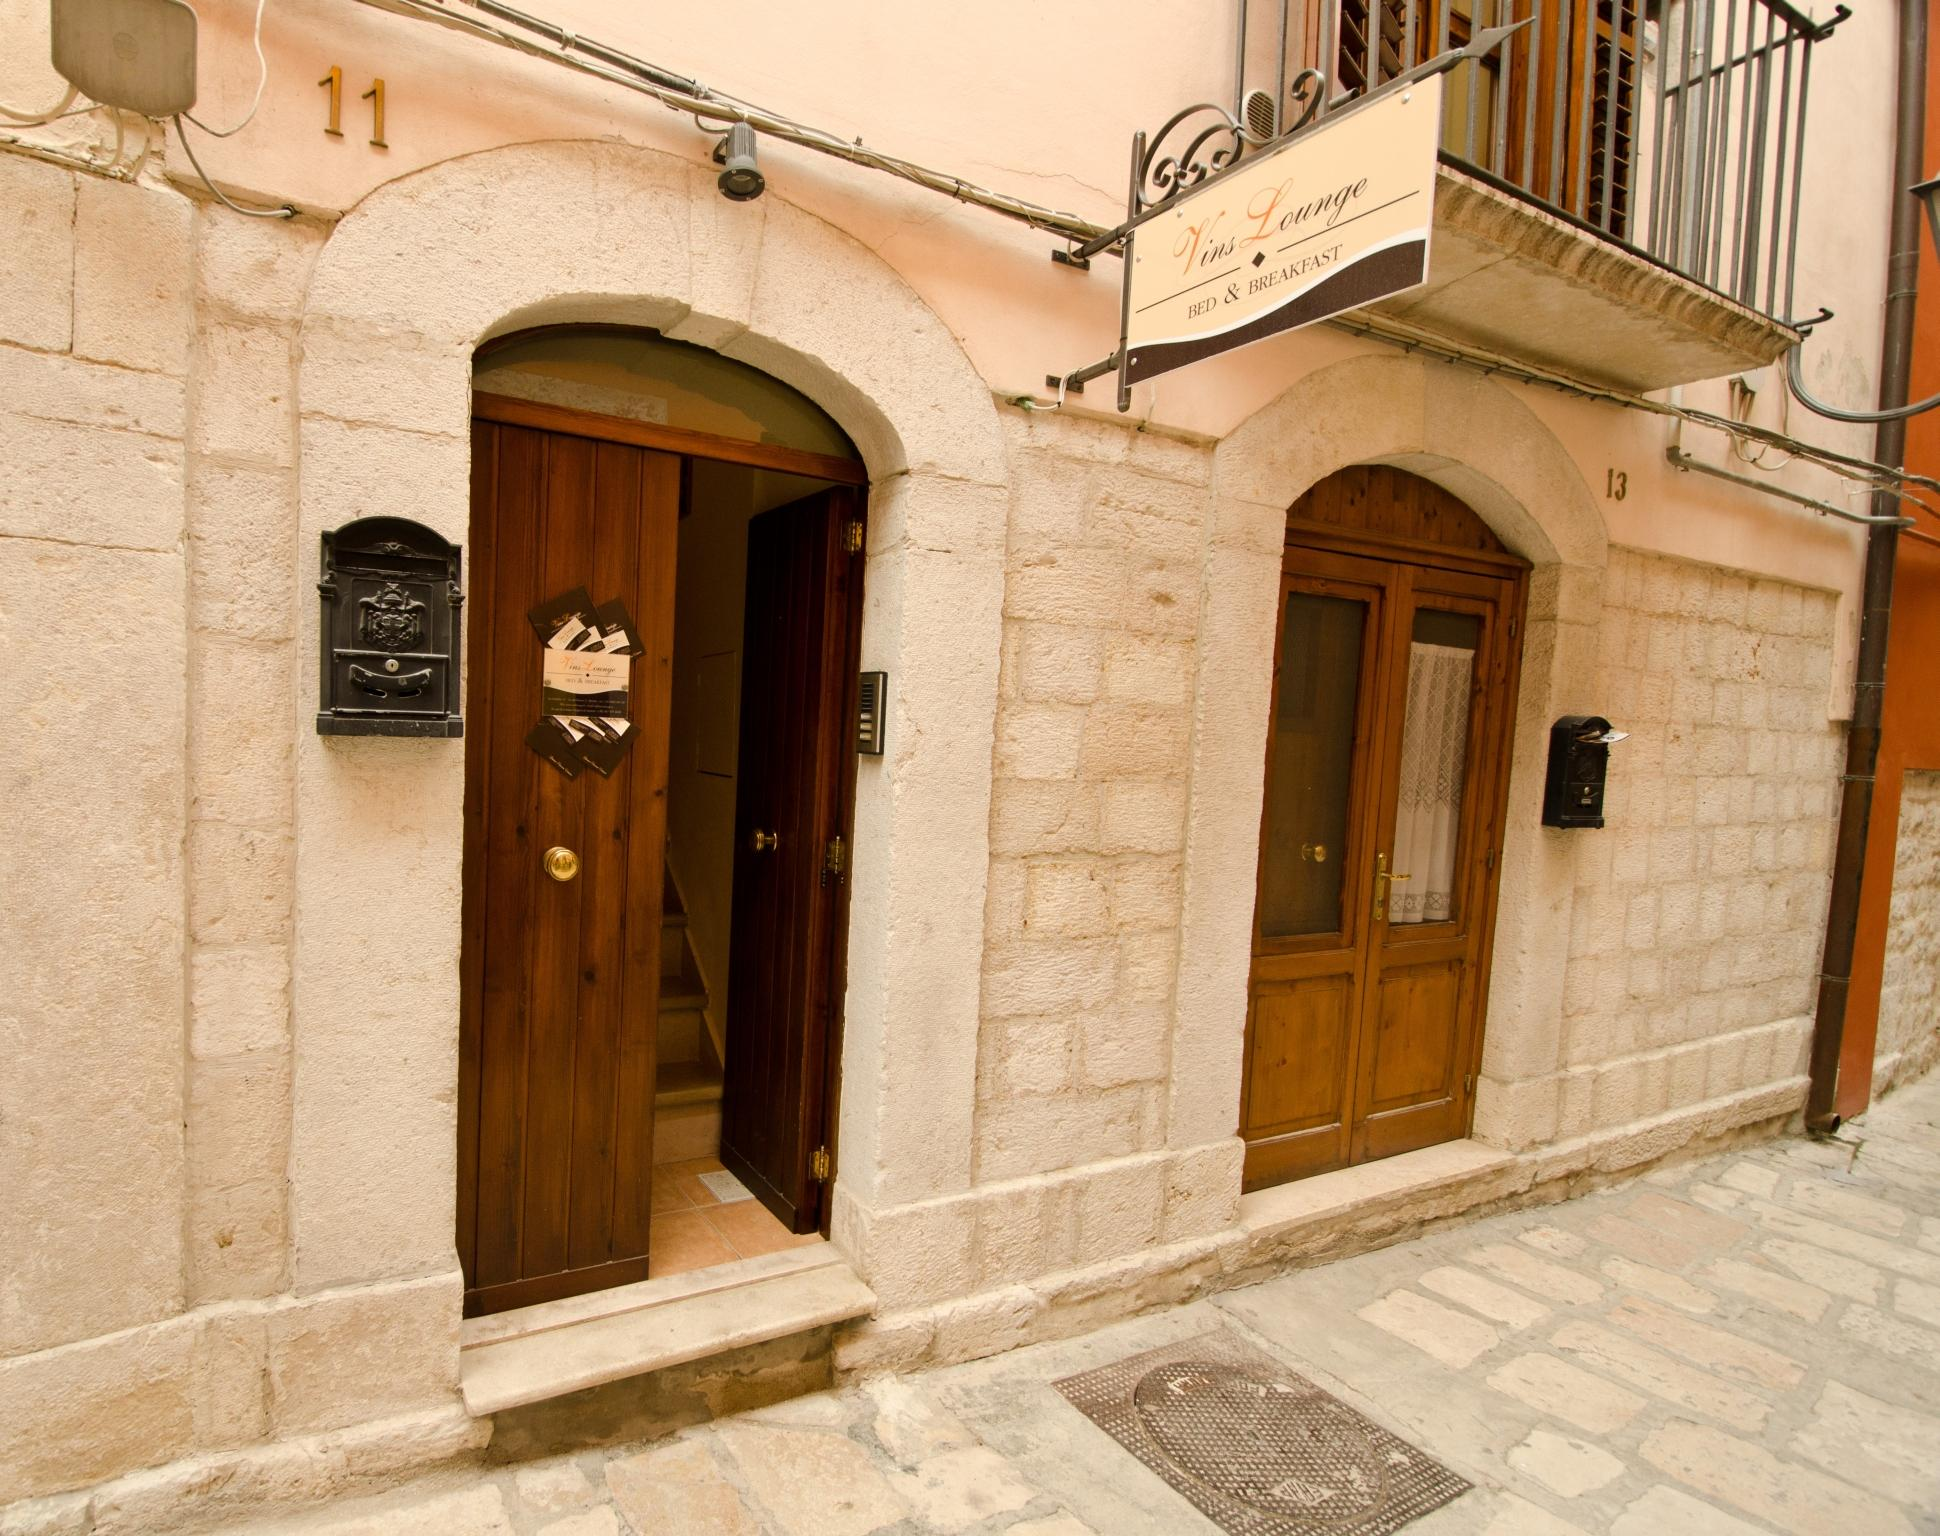 Vinslounge Bed And Breakfast, Barletta-Andria-Trani